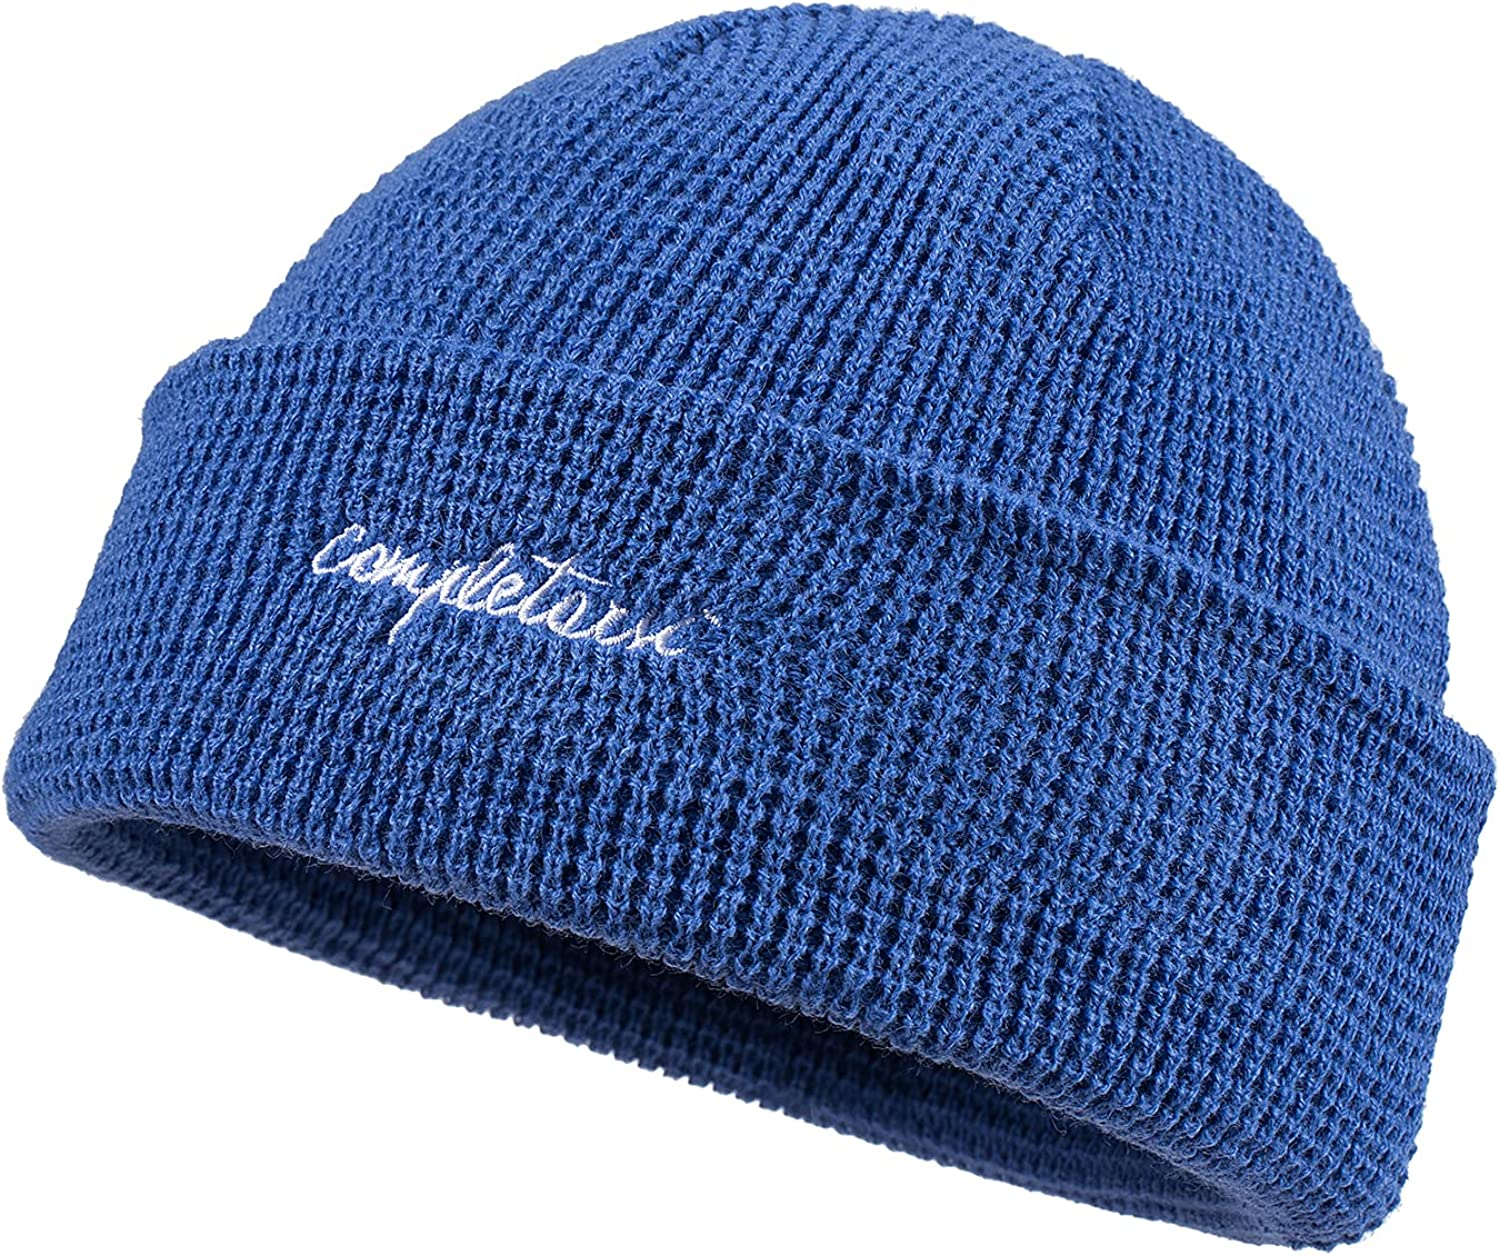 Clape Men's Beanie Max 79% OFF Bargain sale Cap Winter Acrylic Stocking Hats Daily Watch